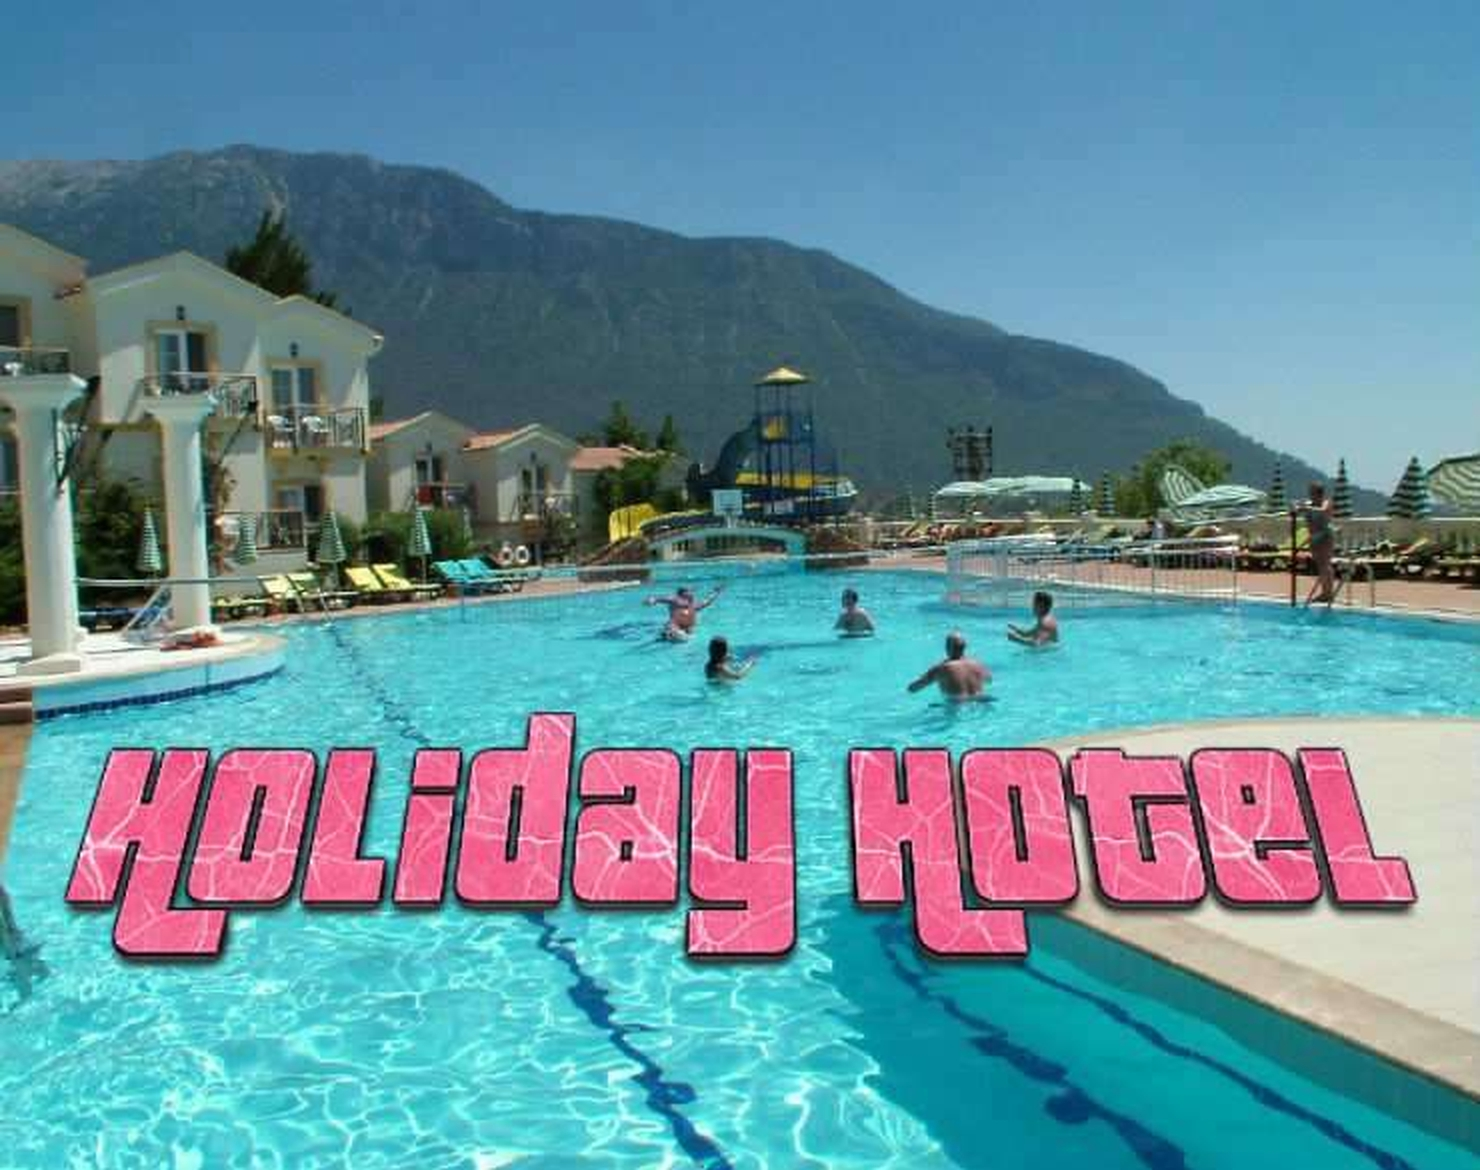 The Holiday Hotel Online Slot Demo Game by NeoGames